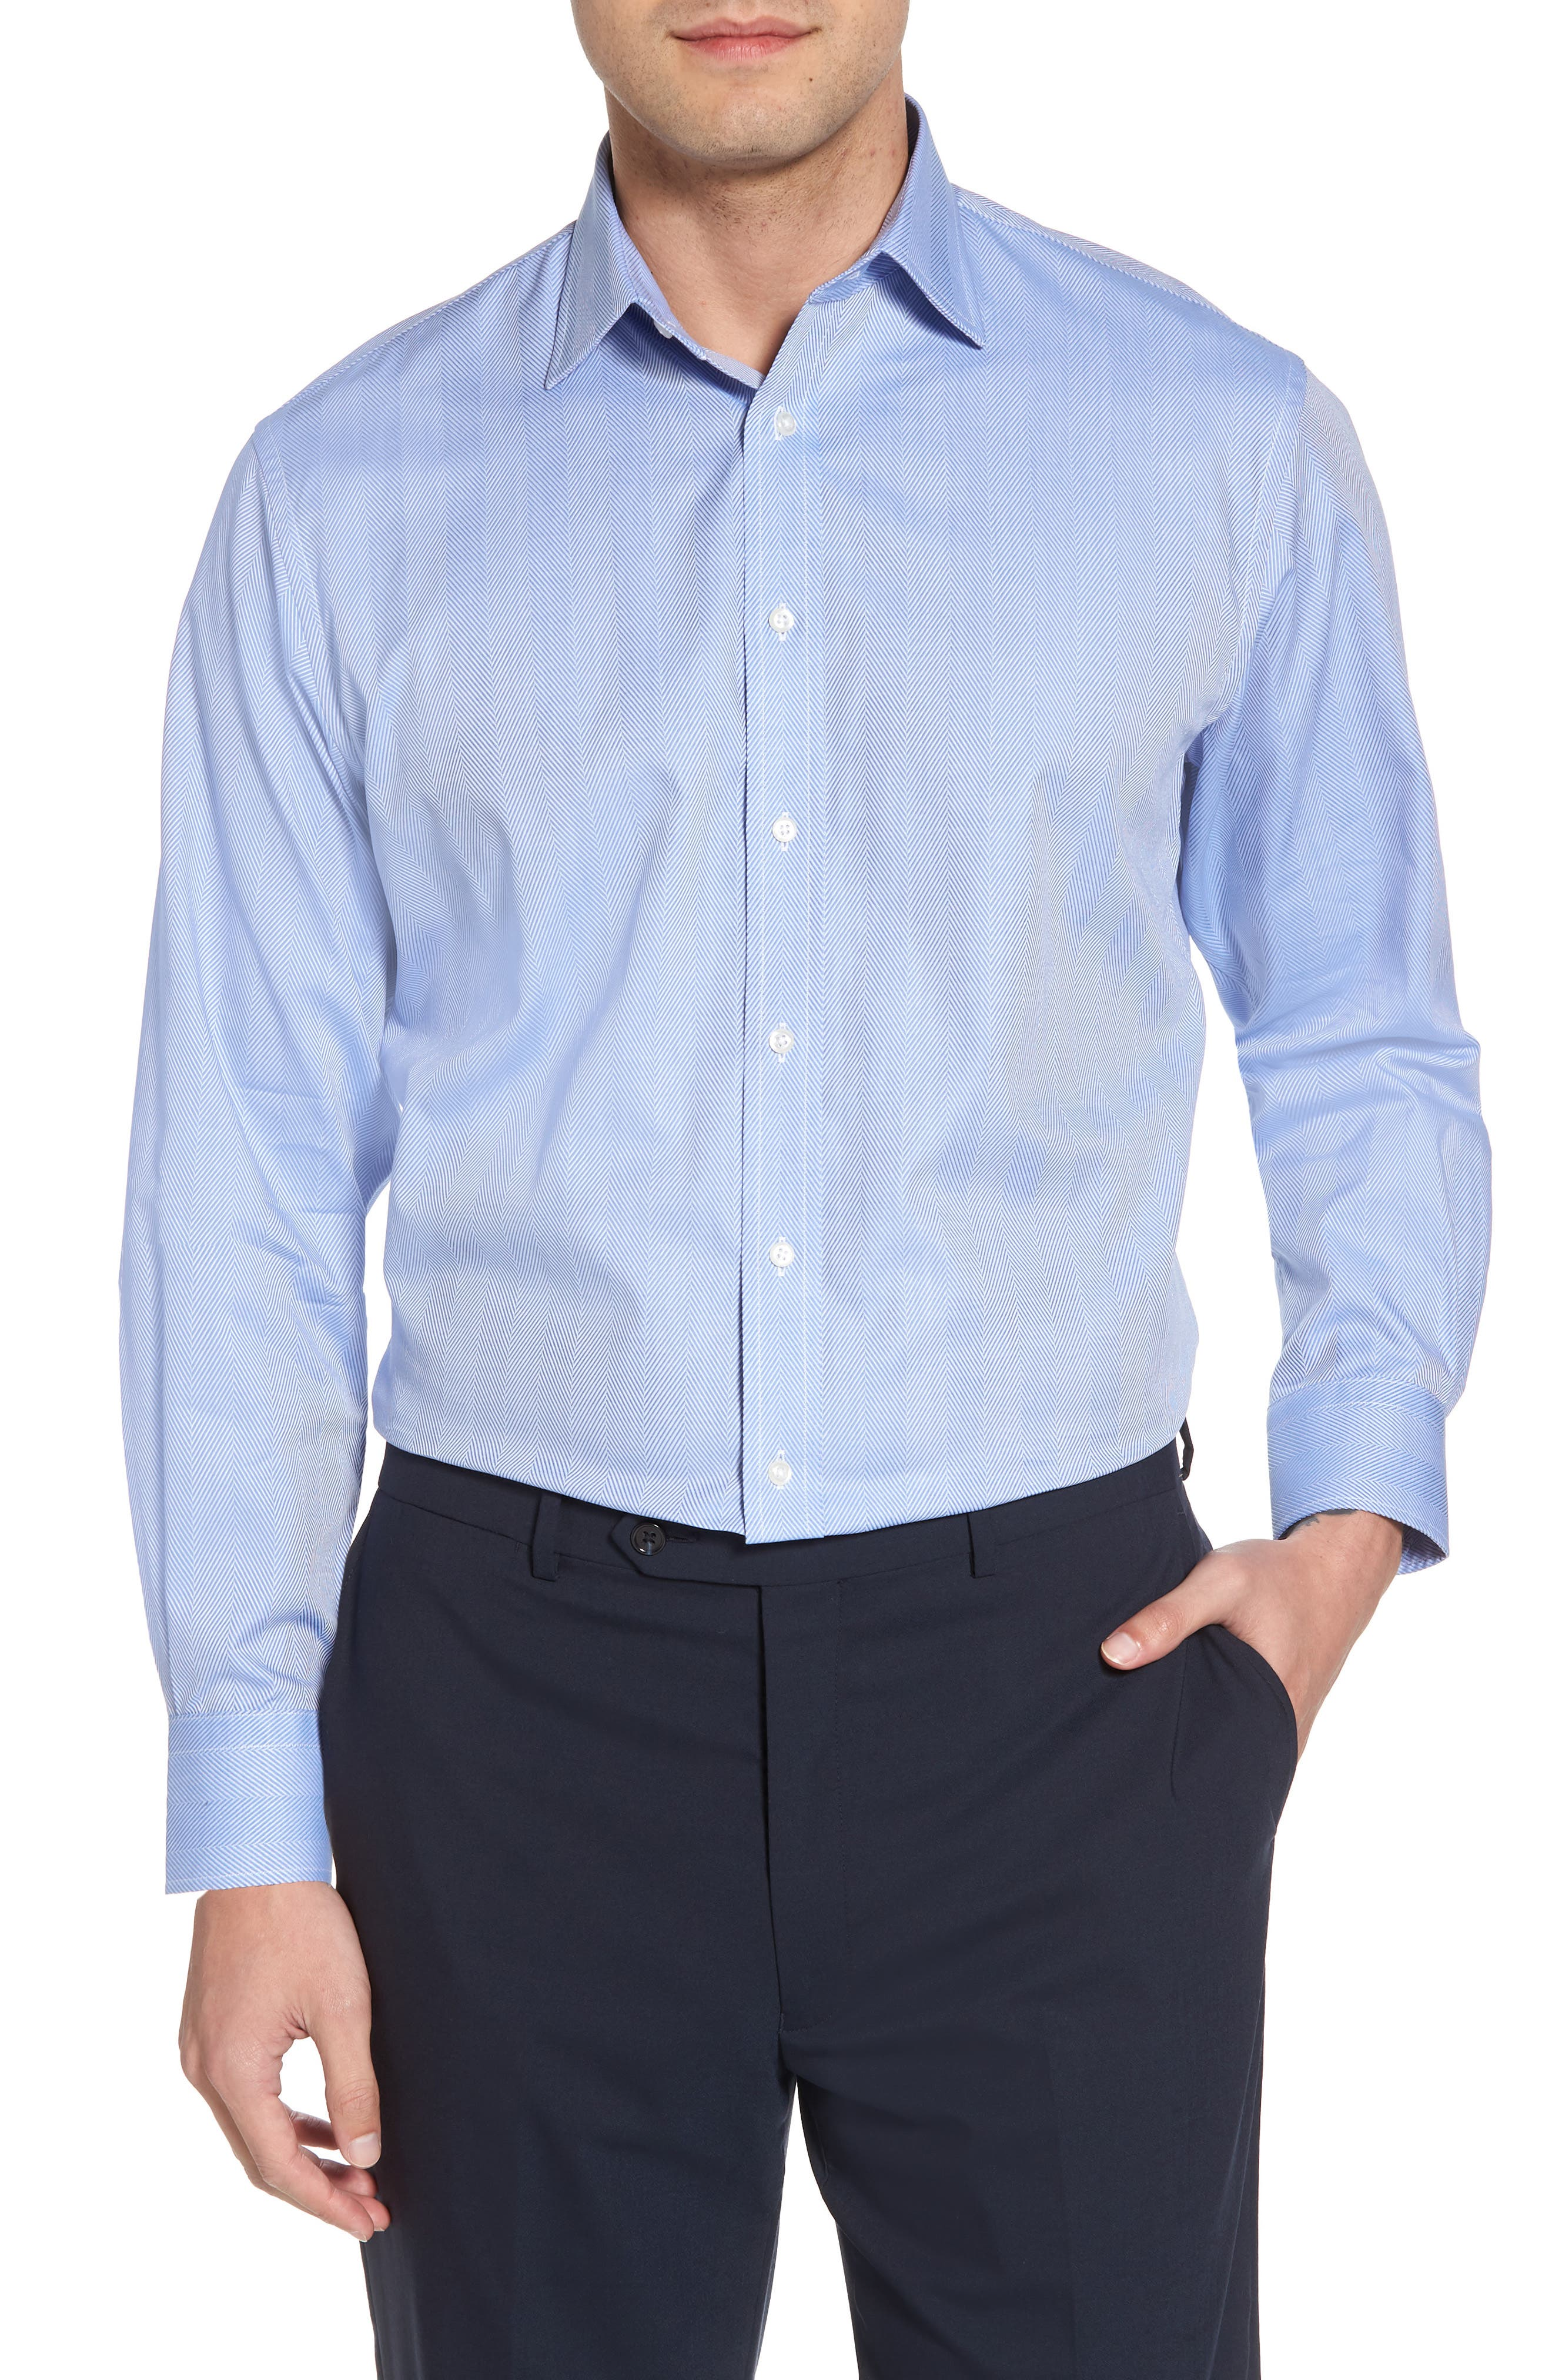 Main Image - Nordstrom Men's Shop Traditional Fit Herringbone Dress Shirt